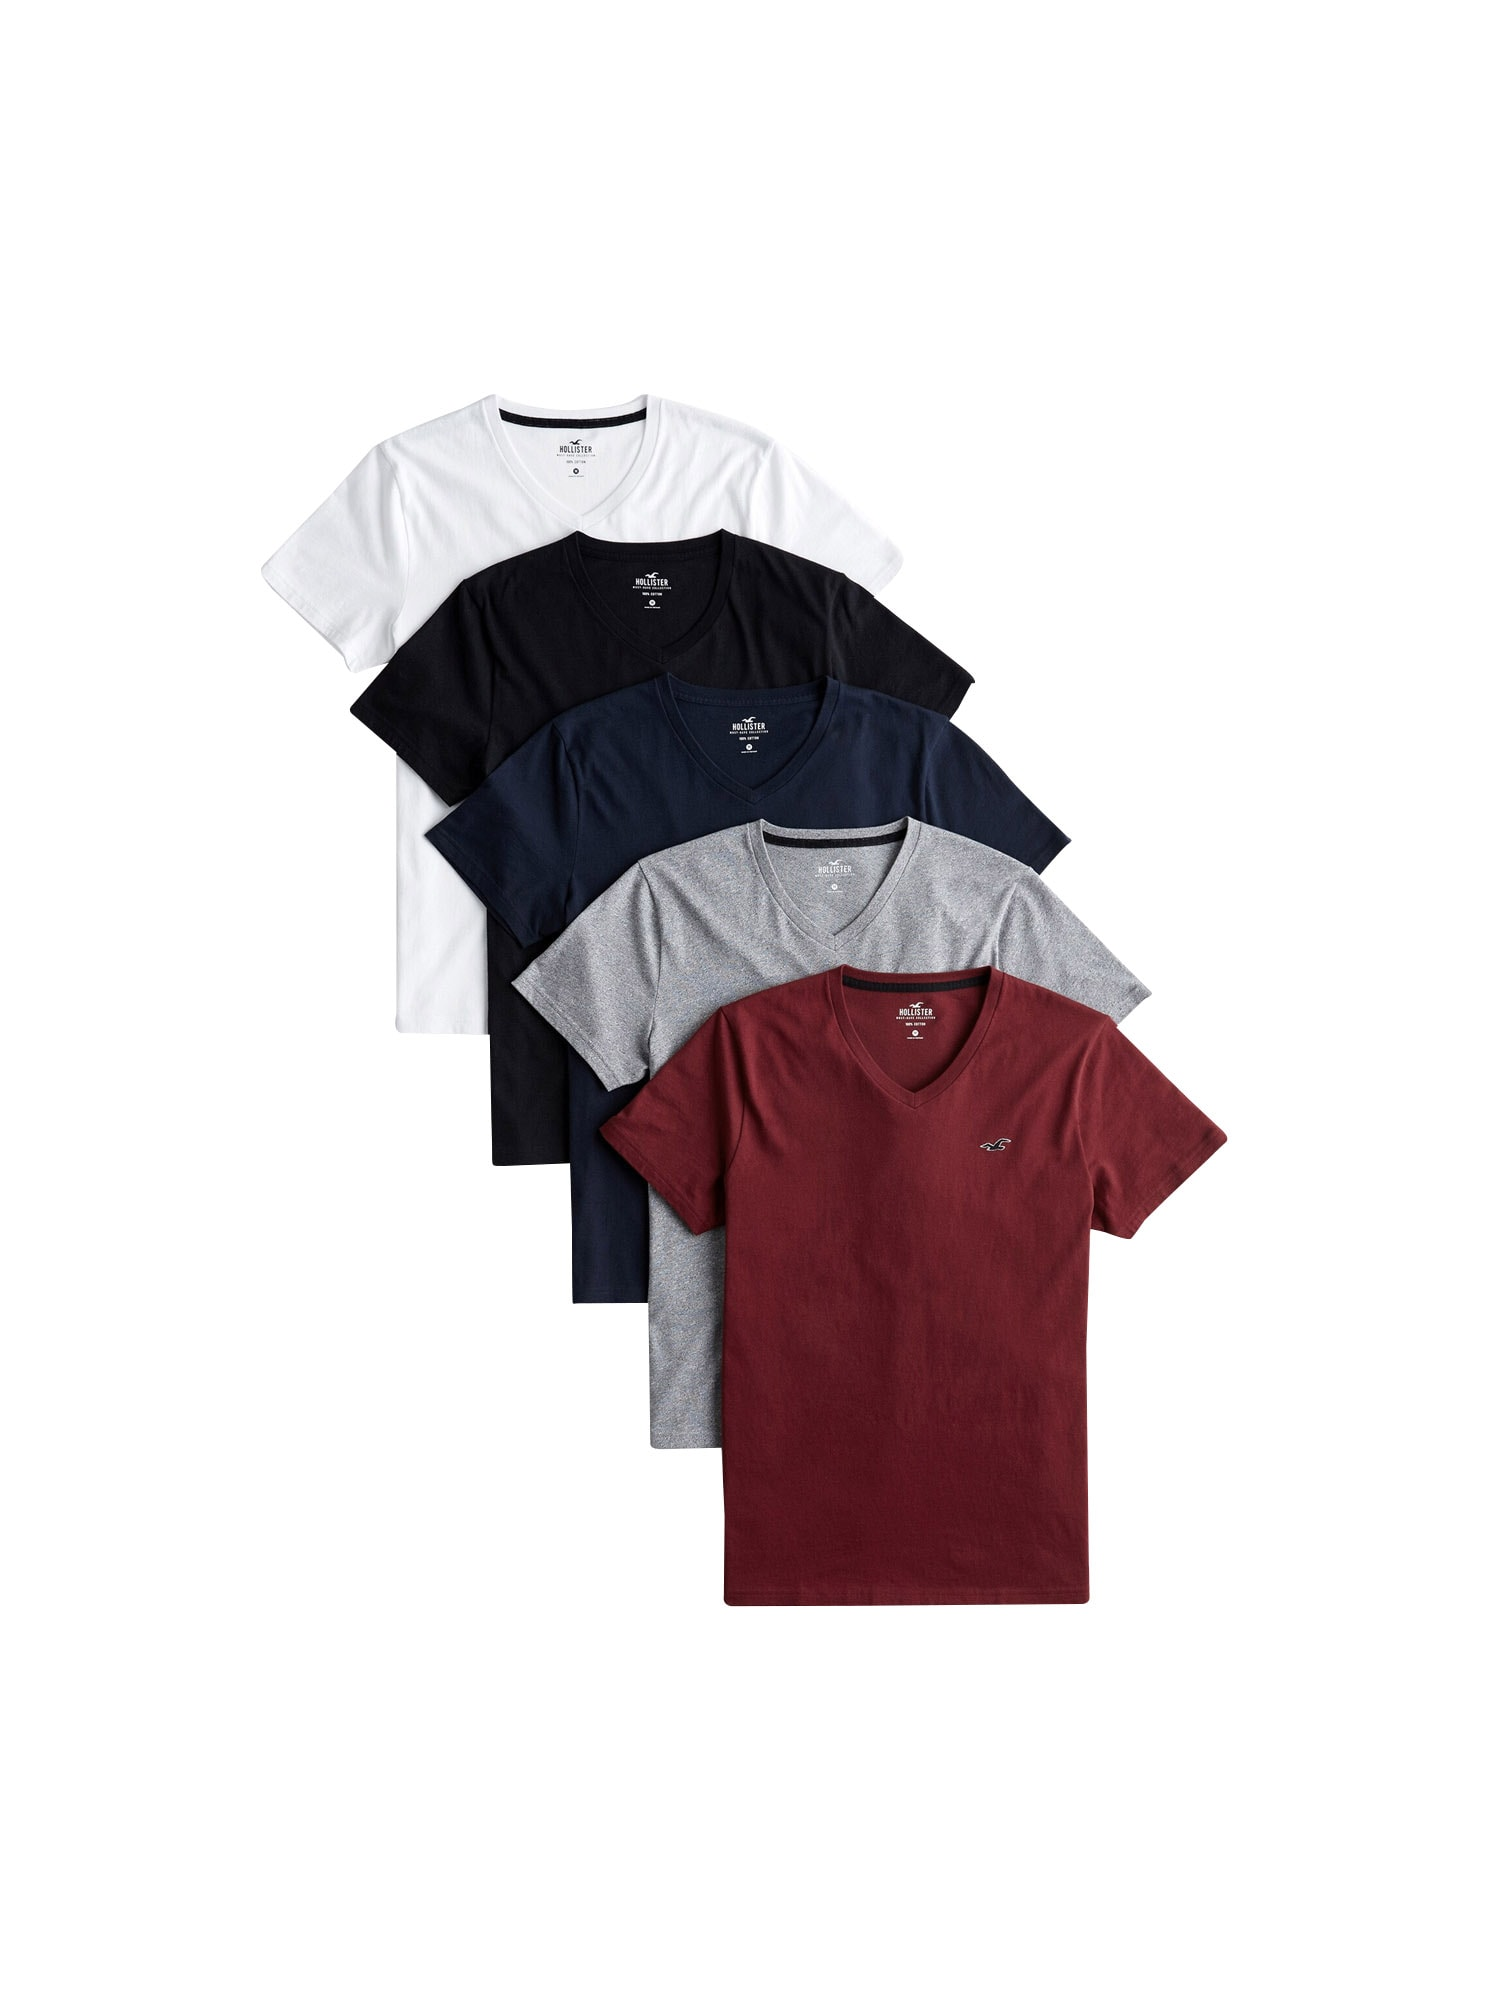 HOLLISTER Tričko 5PK mix barev Hollister